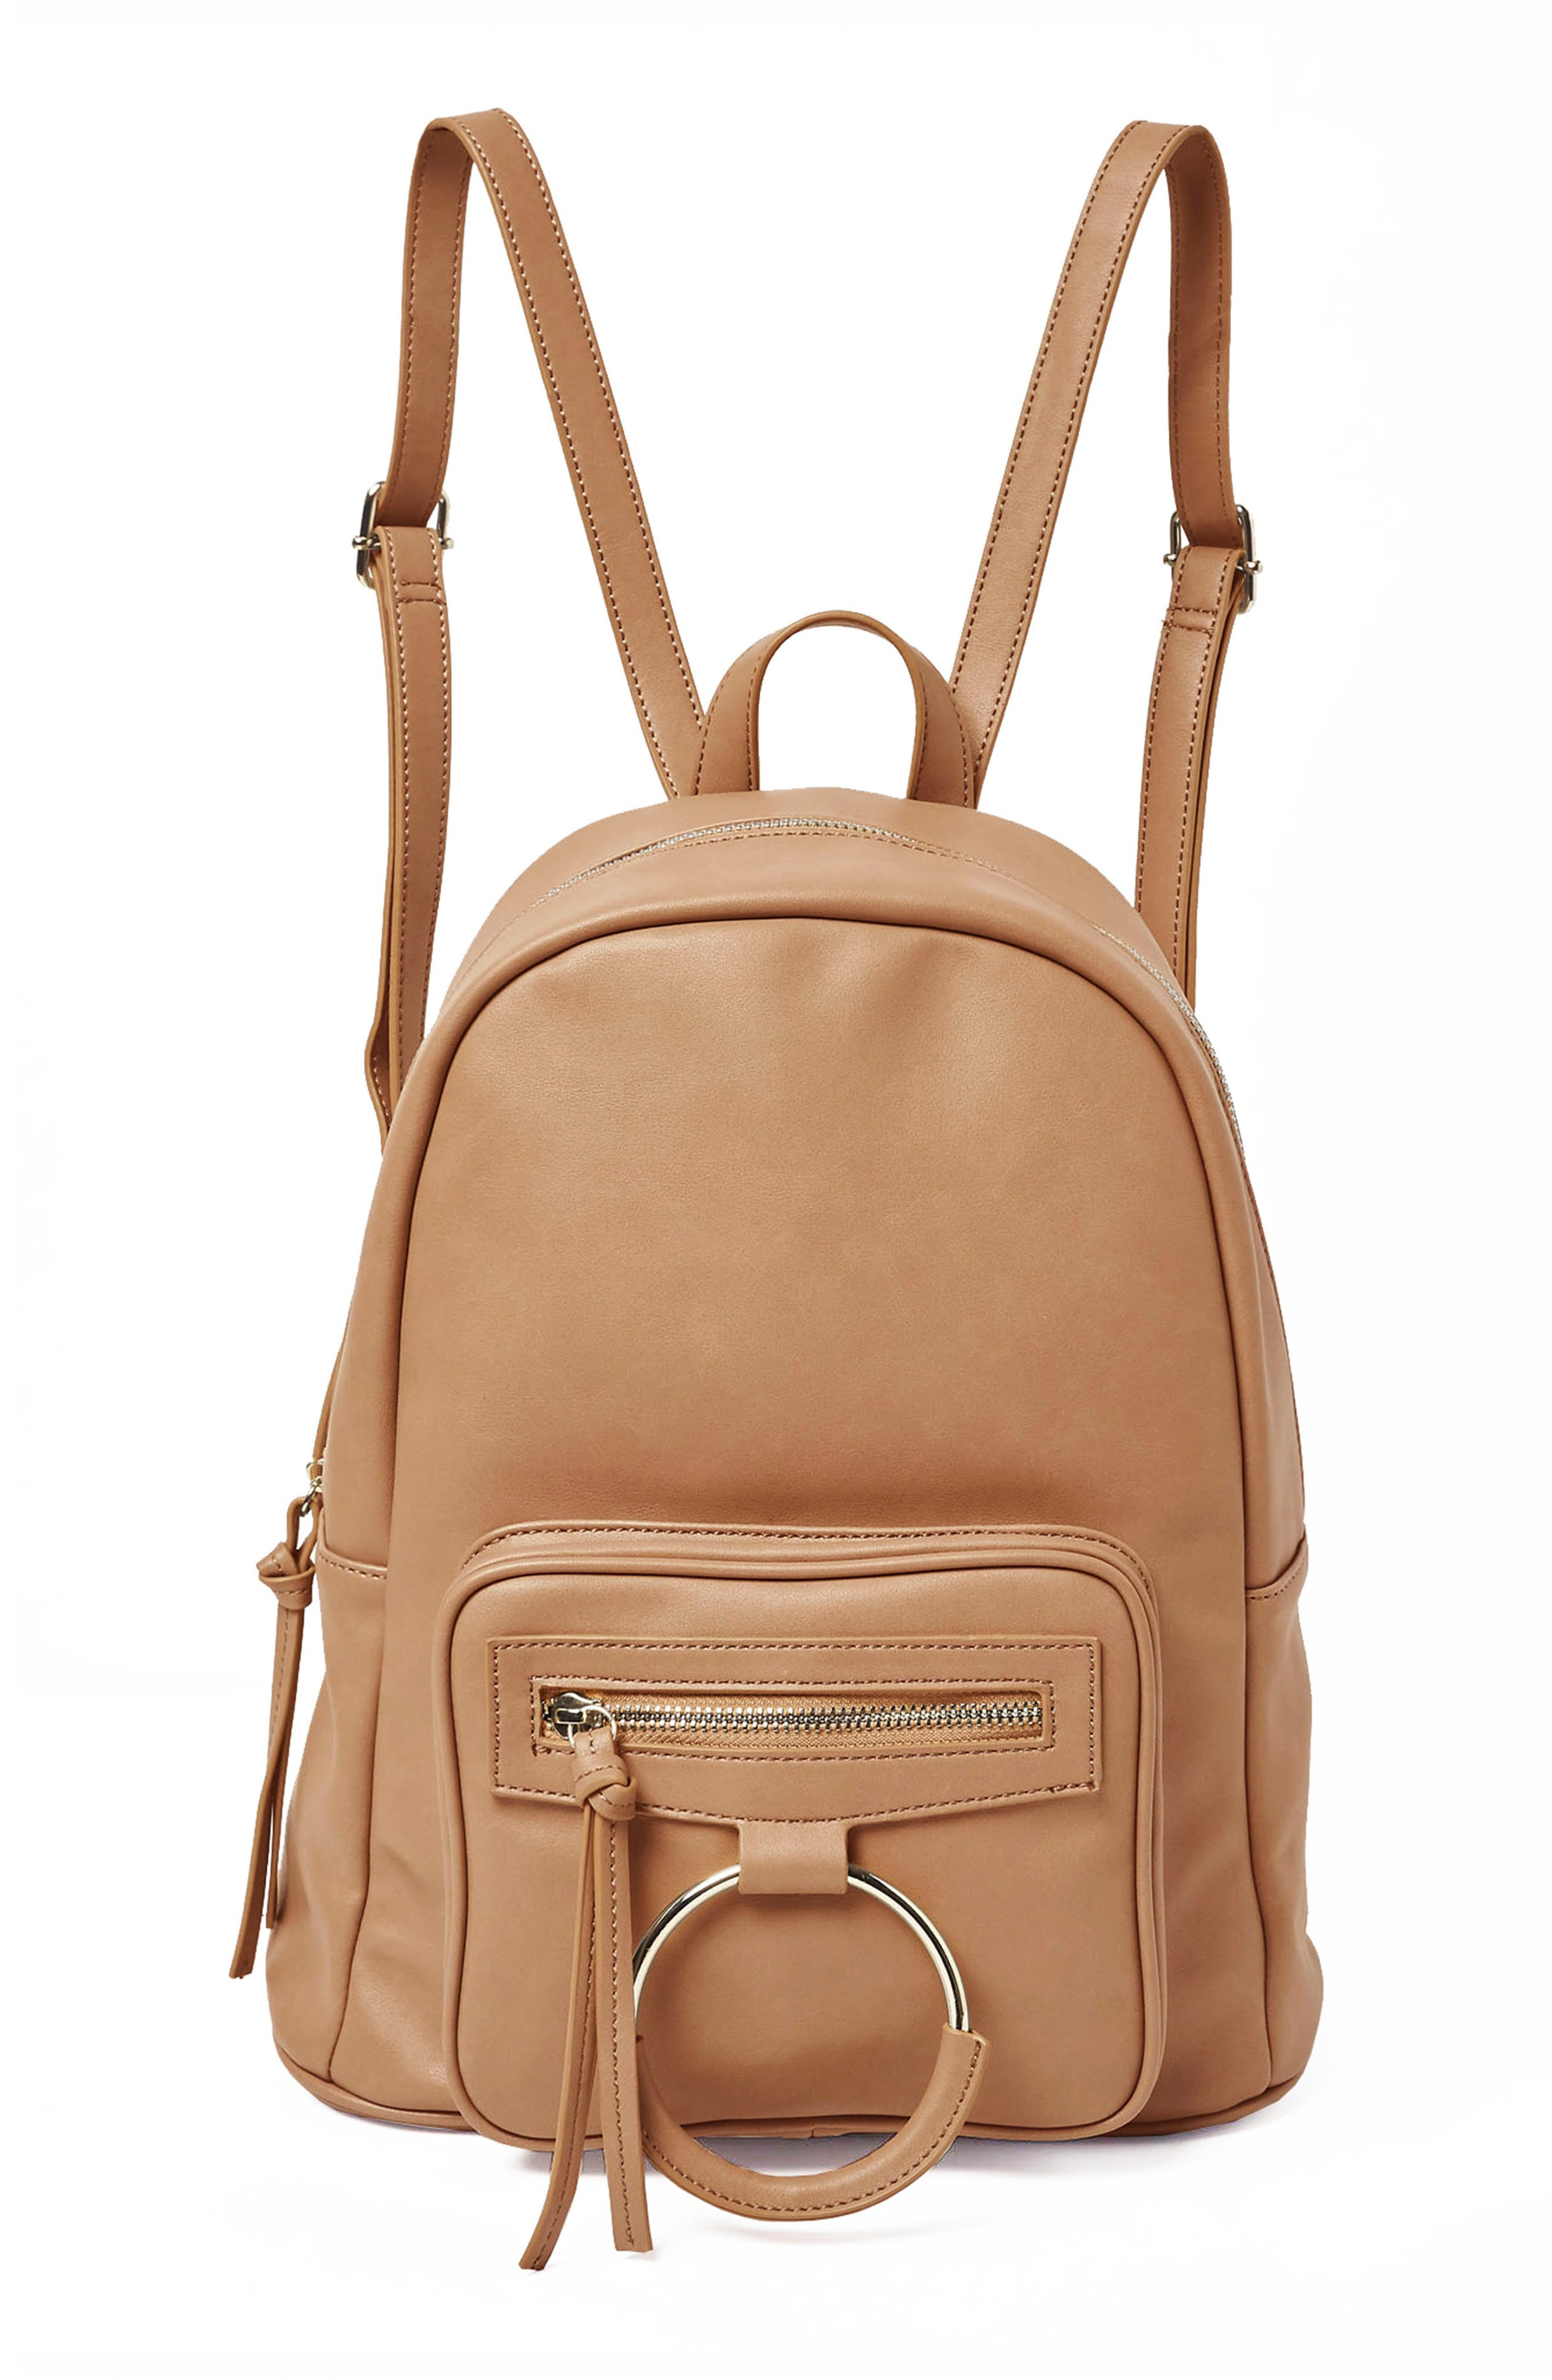 Sublime Vegan Leather Backpack,                             Main thumbnail 1, color,                             Nude